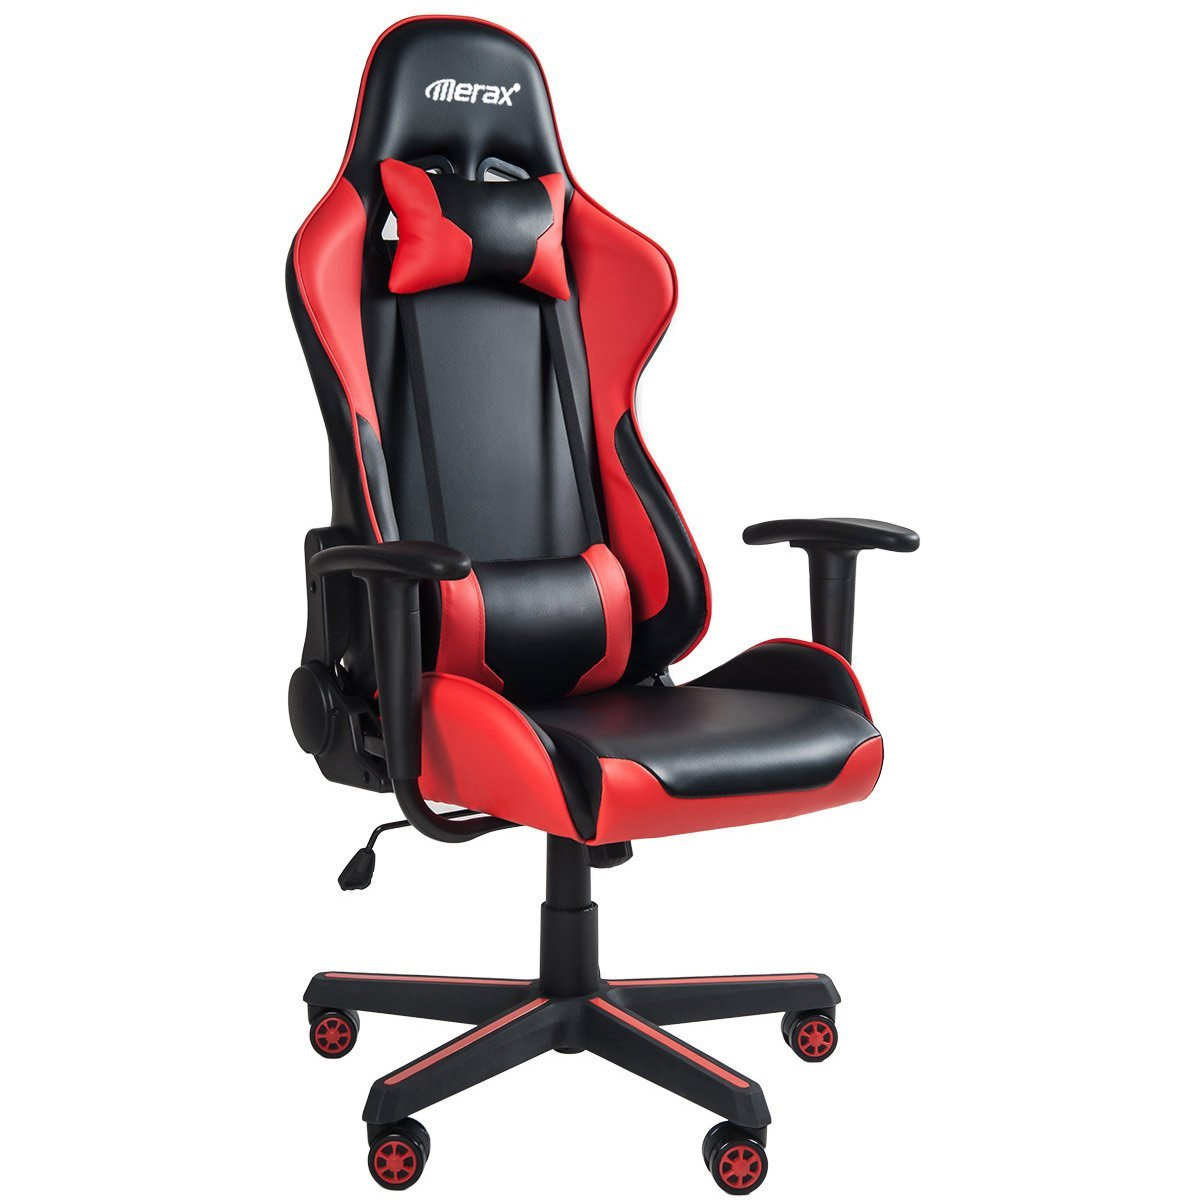 cheap gamer chair garden covers at argos 10 gaming chairs  under 100 pro